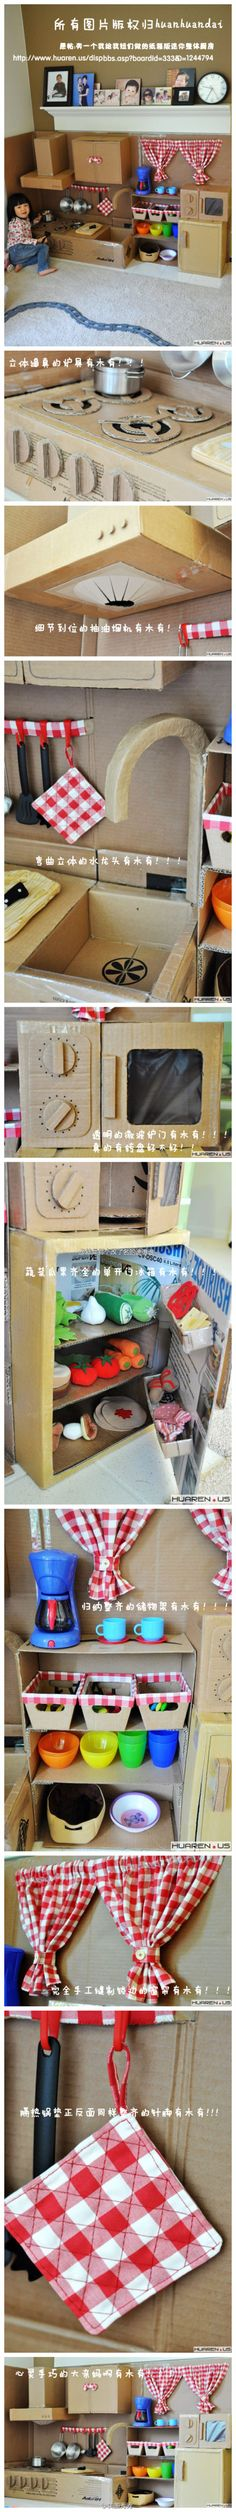 DIY cardboard kitchen I Love this! Though now the cardboard stove I made for my girl looks dinky by comparison. Projects For Kids, Diy For Kids, Diy And Crafts, Craft Projects, Crafts For Kids, Kids Fun, Cardboard Kitchen, Cardboard Crafts, Paper Crafts